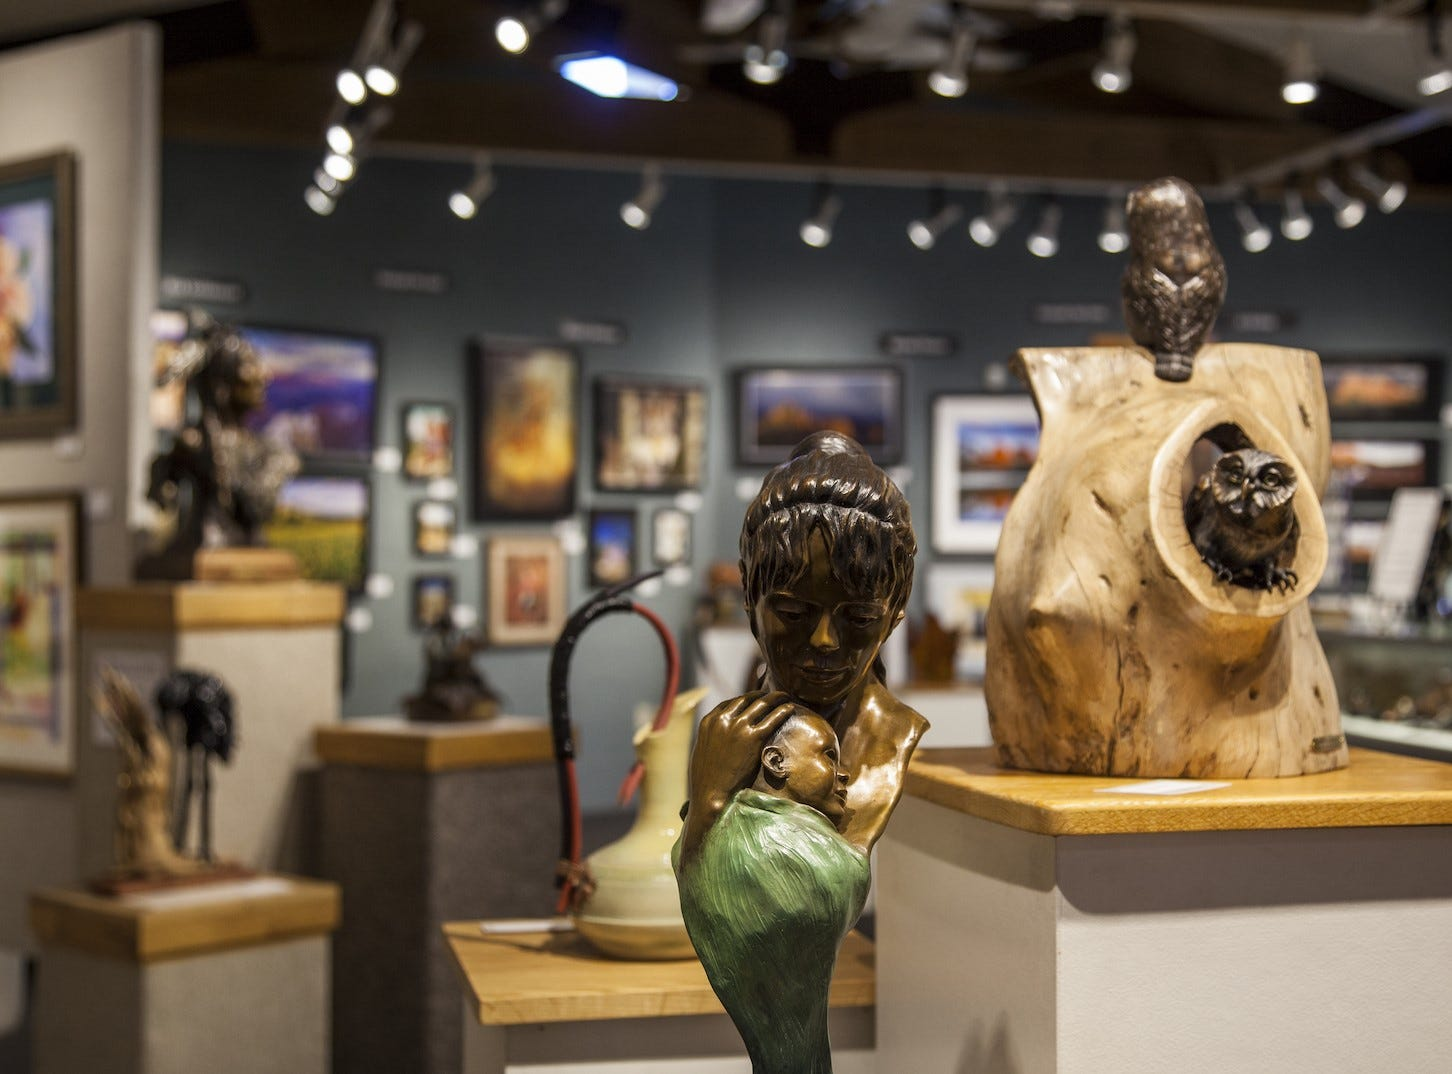 Every first Friday of the month, Sedona's prominent art galleries host an evening of openings, demonstrations and receptions.